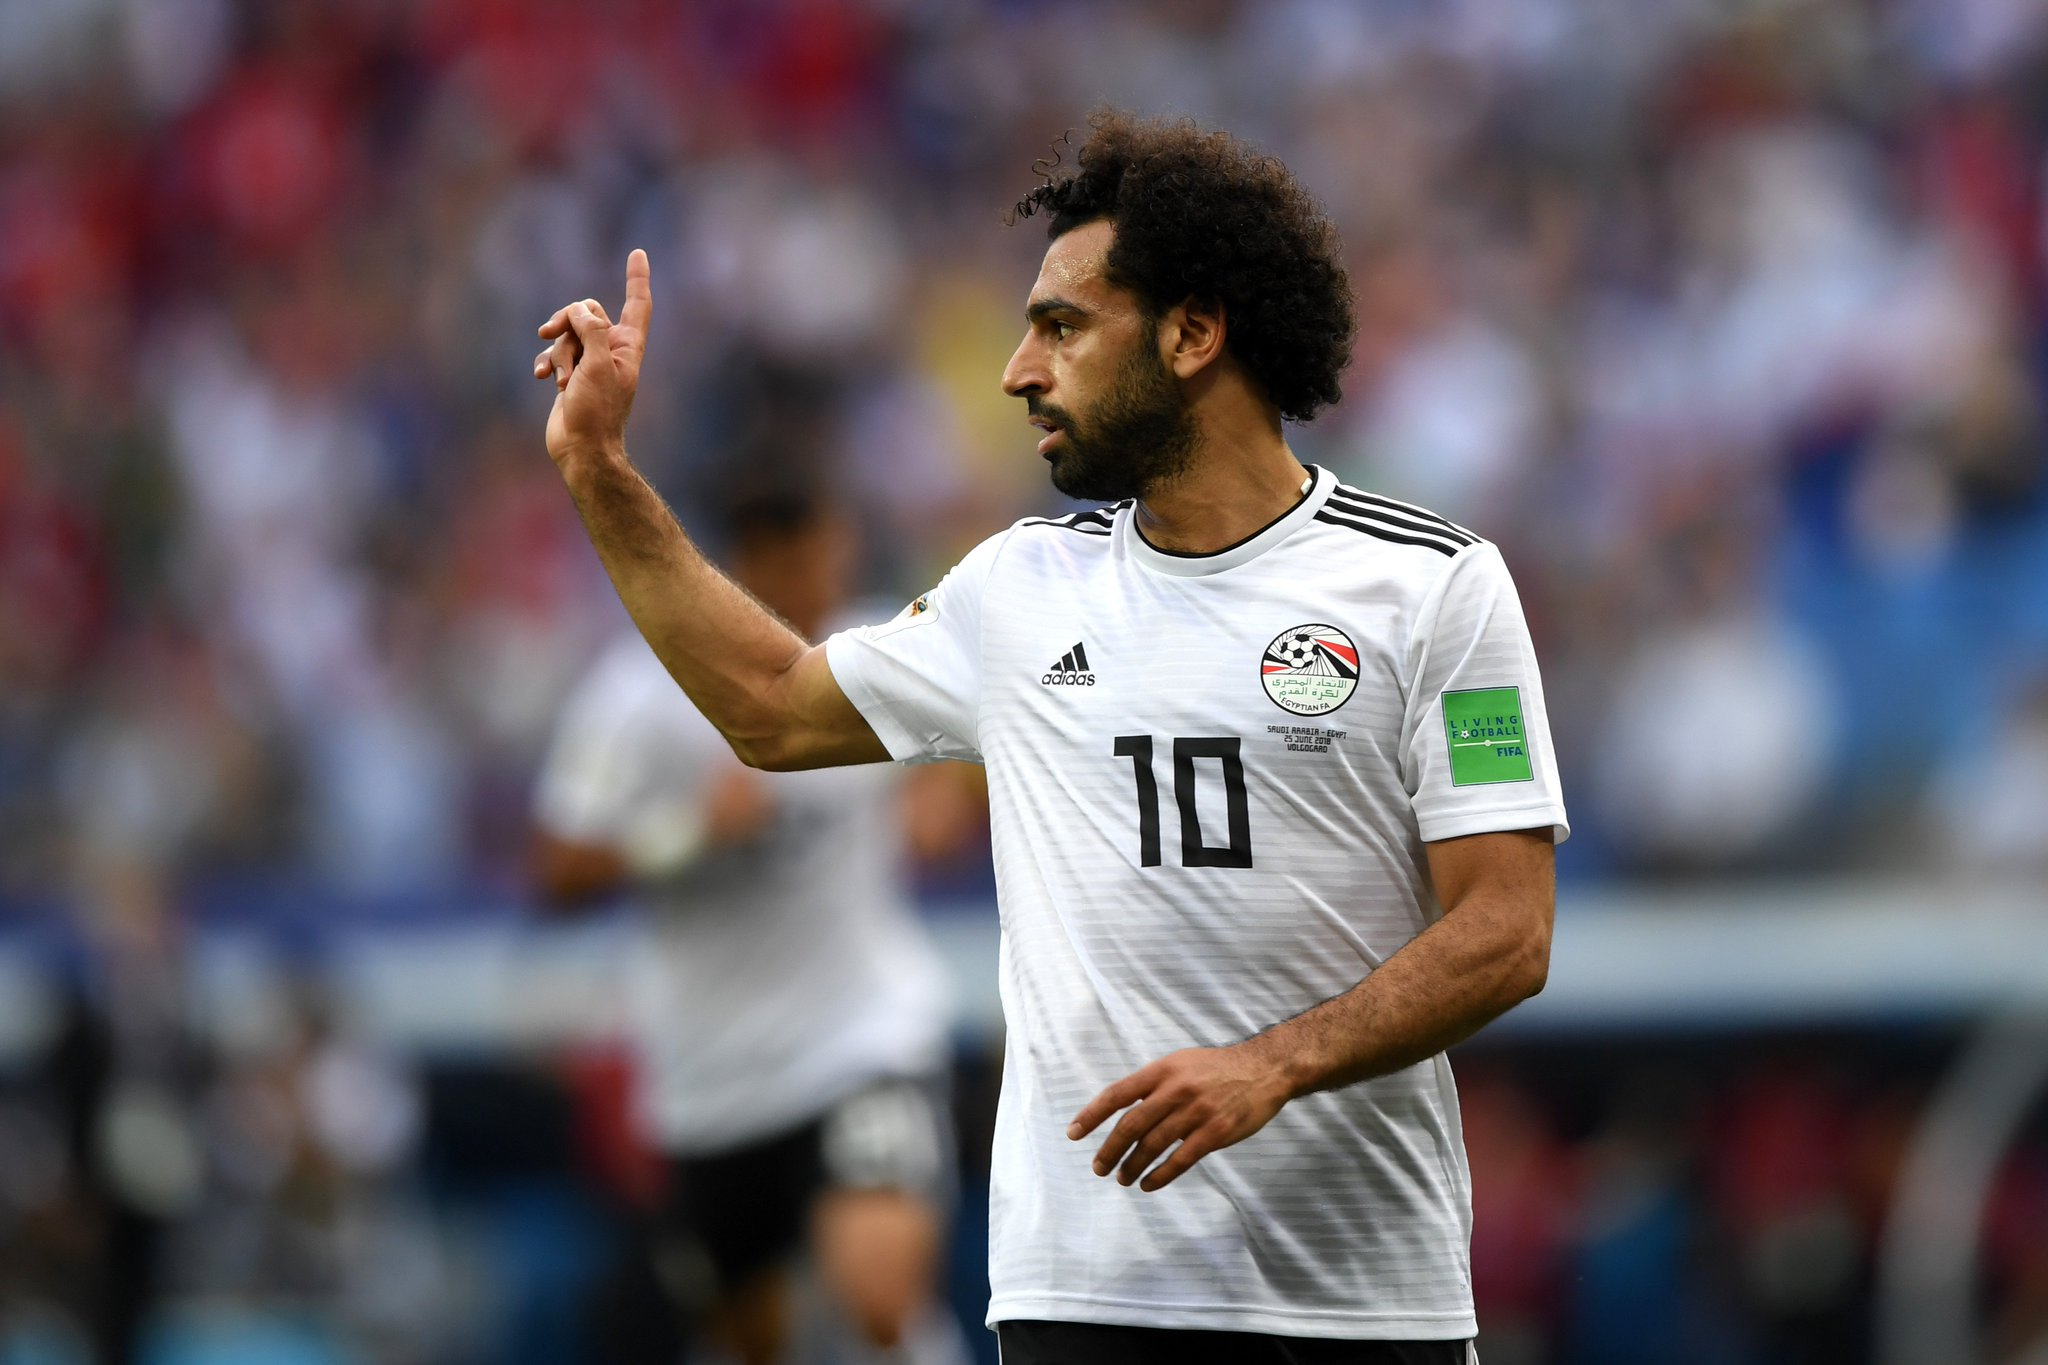 ���� Mohamed Salah has now scored 23 goals for club & country in 2018 ������ https://t.co/i4AmQB2exT